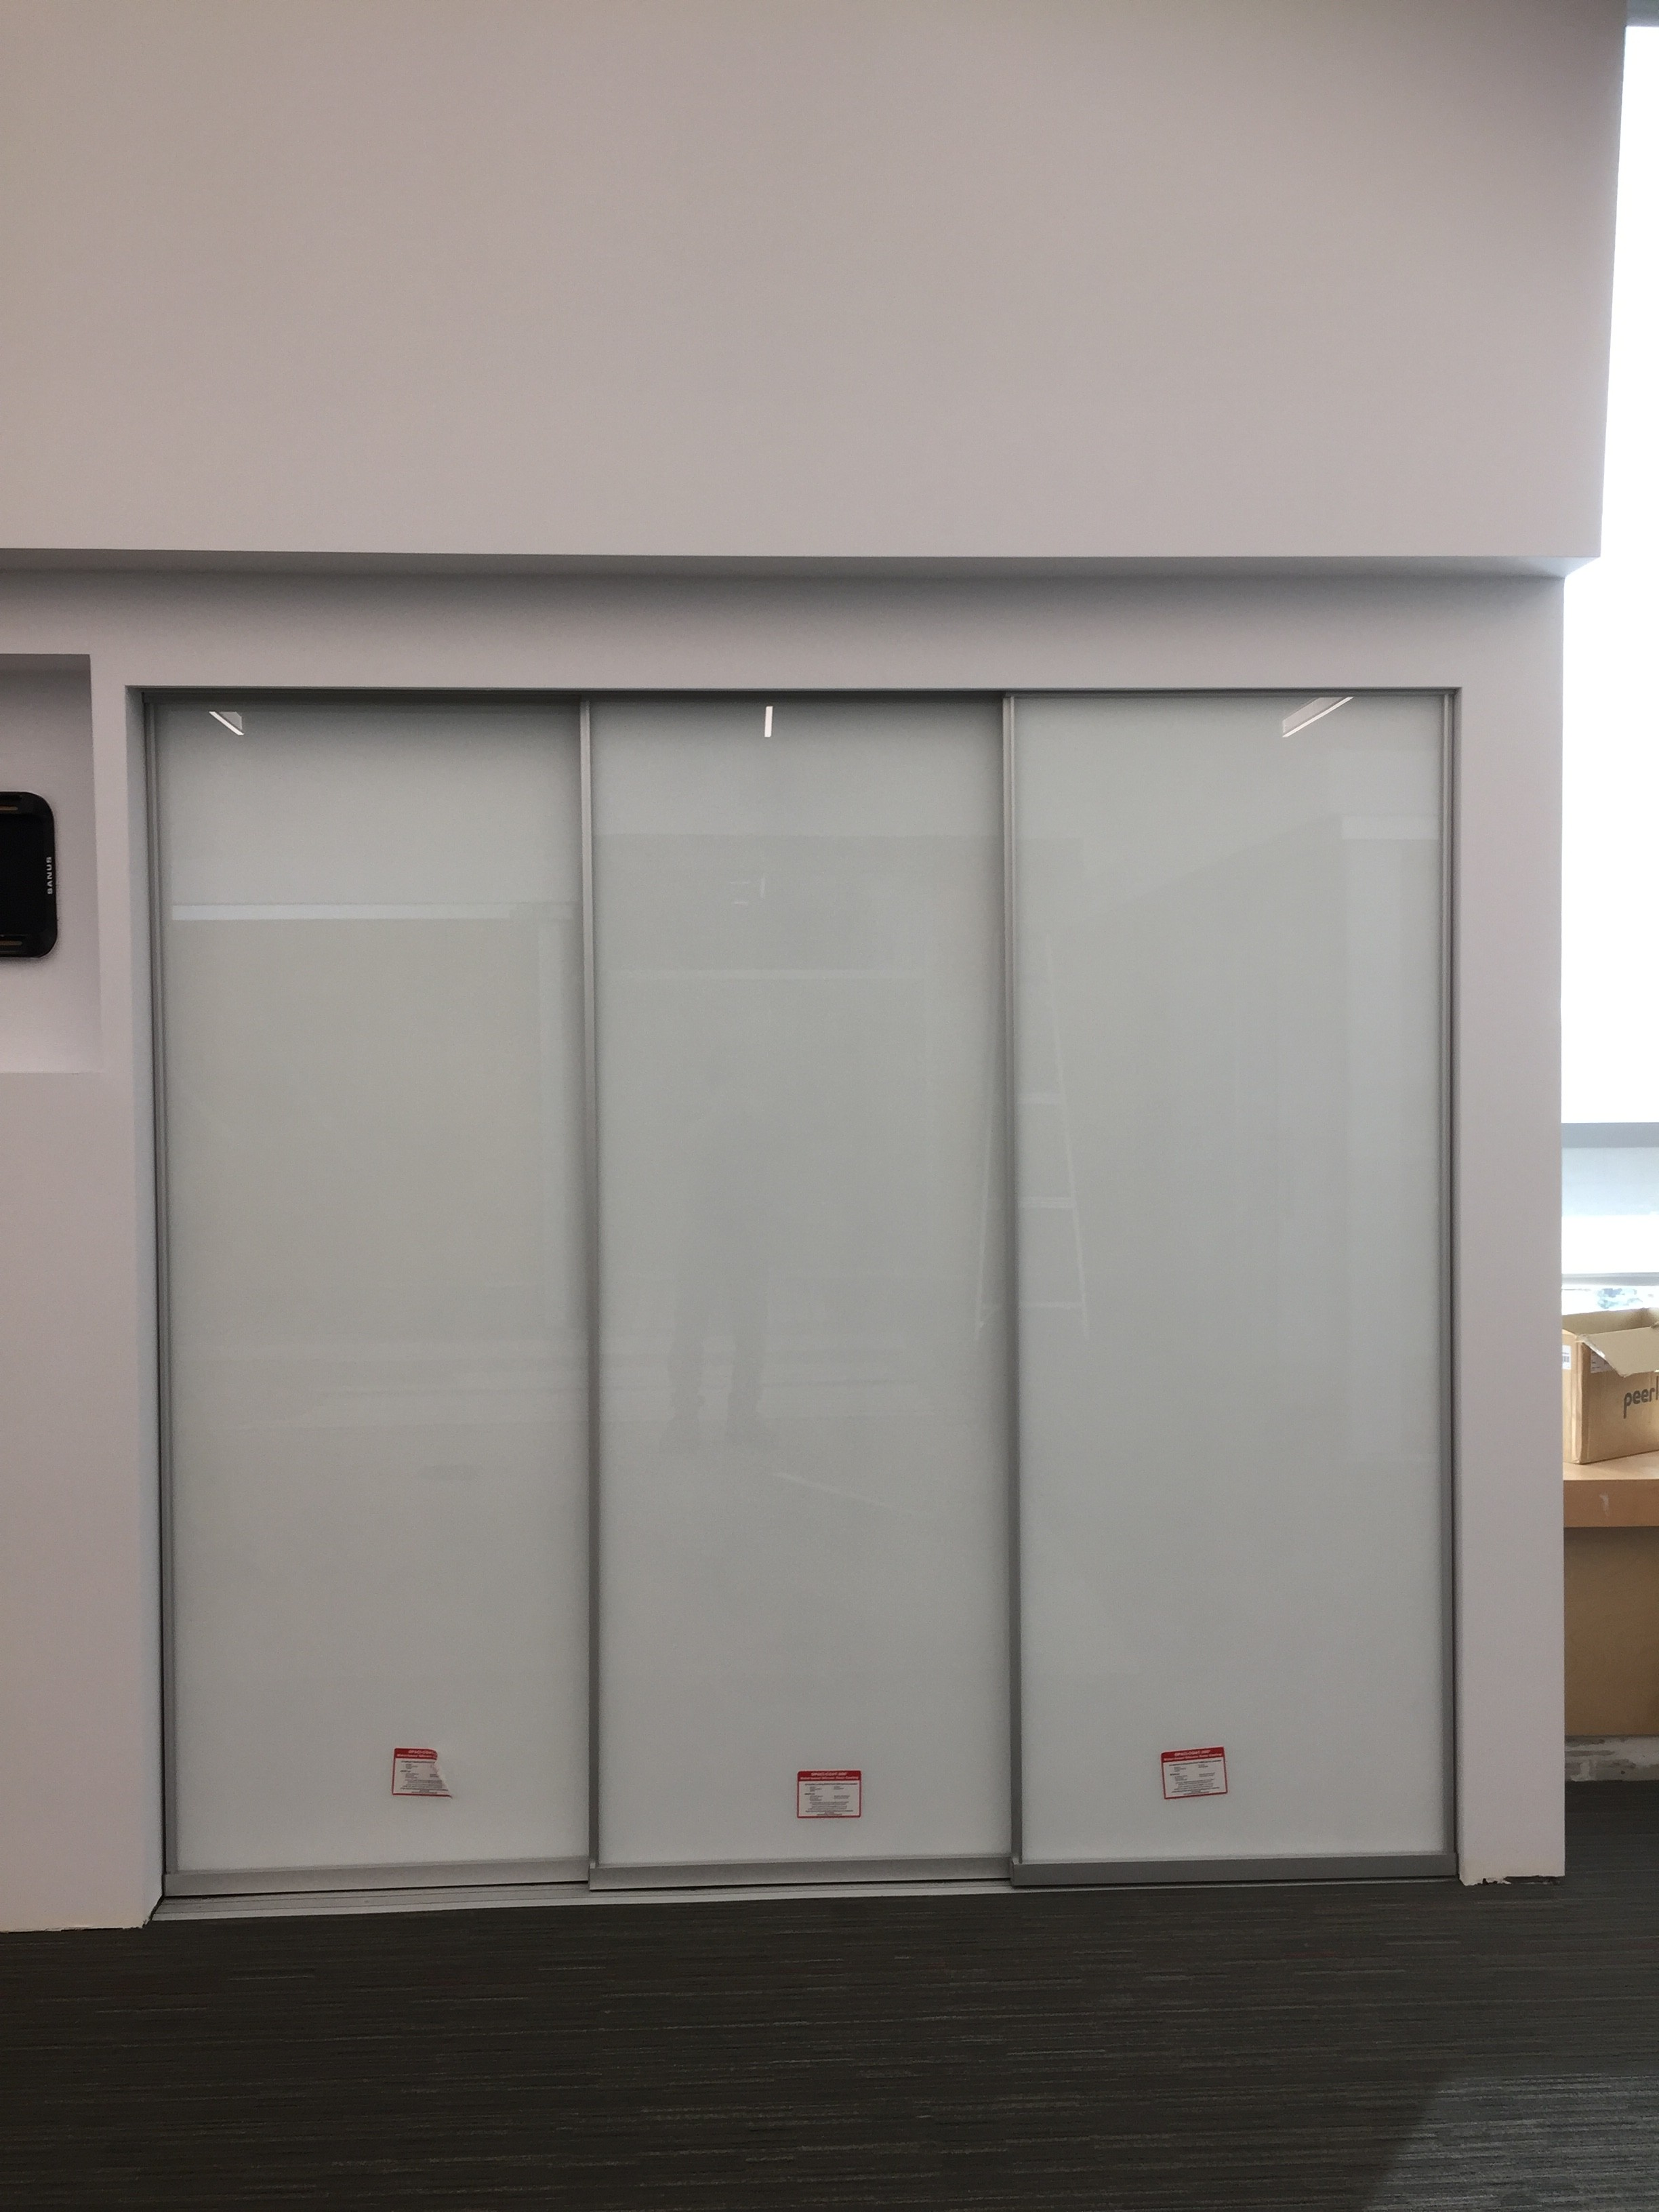 Interior office glass walls sliding glass doors curtain for Glass walls and doors